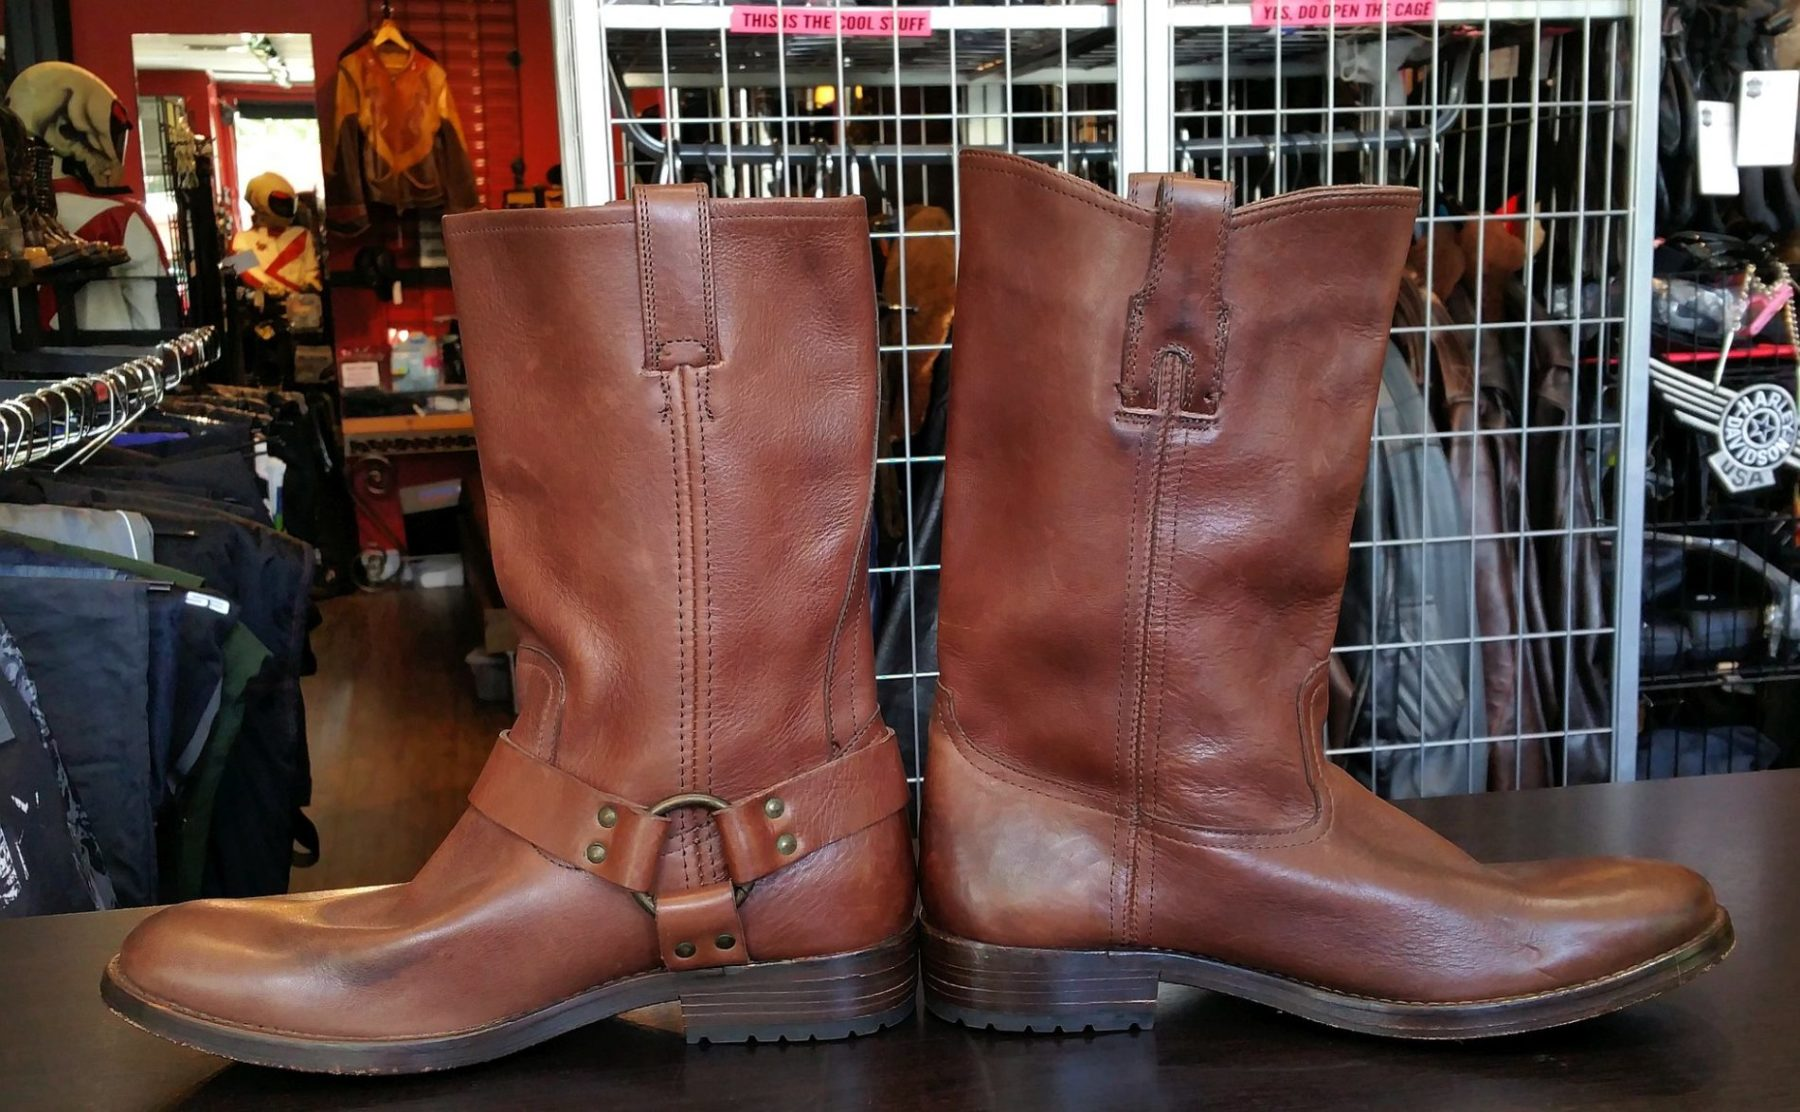 Frye Boots that are Star-Crossed Lovers